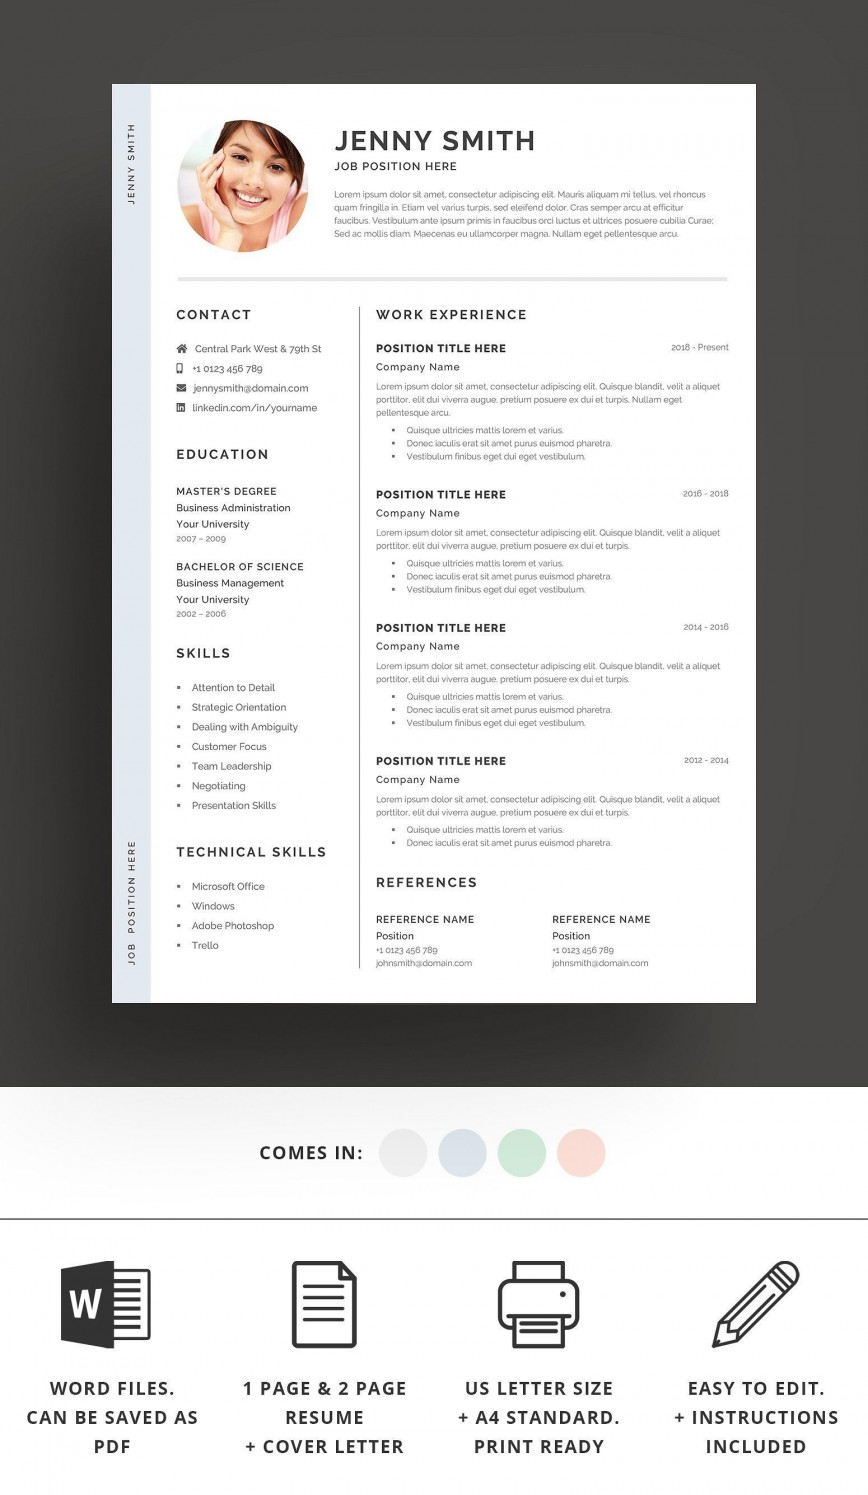 002 Top Resume Template Word 2016 High Definition  Cv Microsoft Download Free868